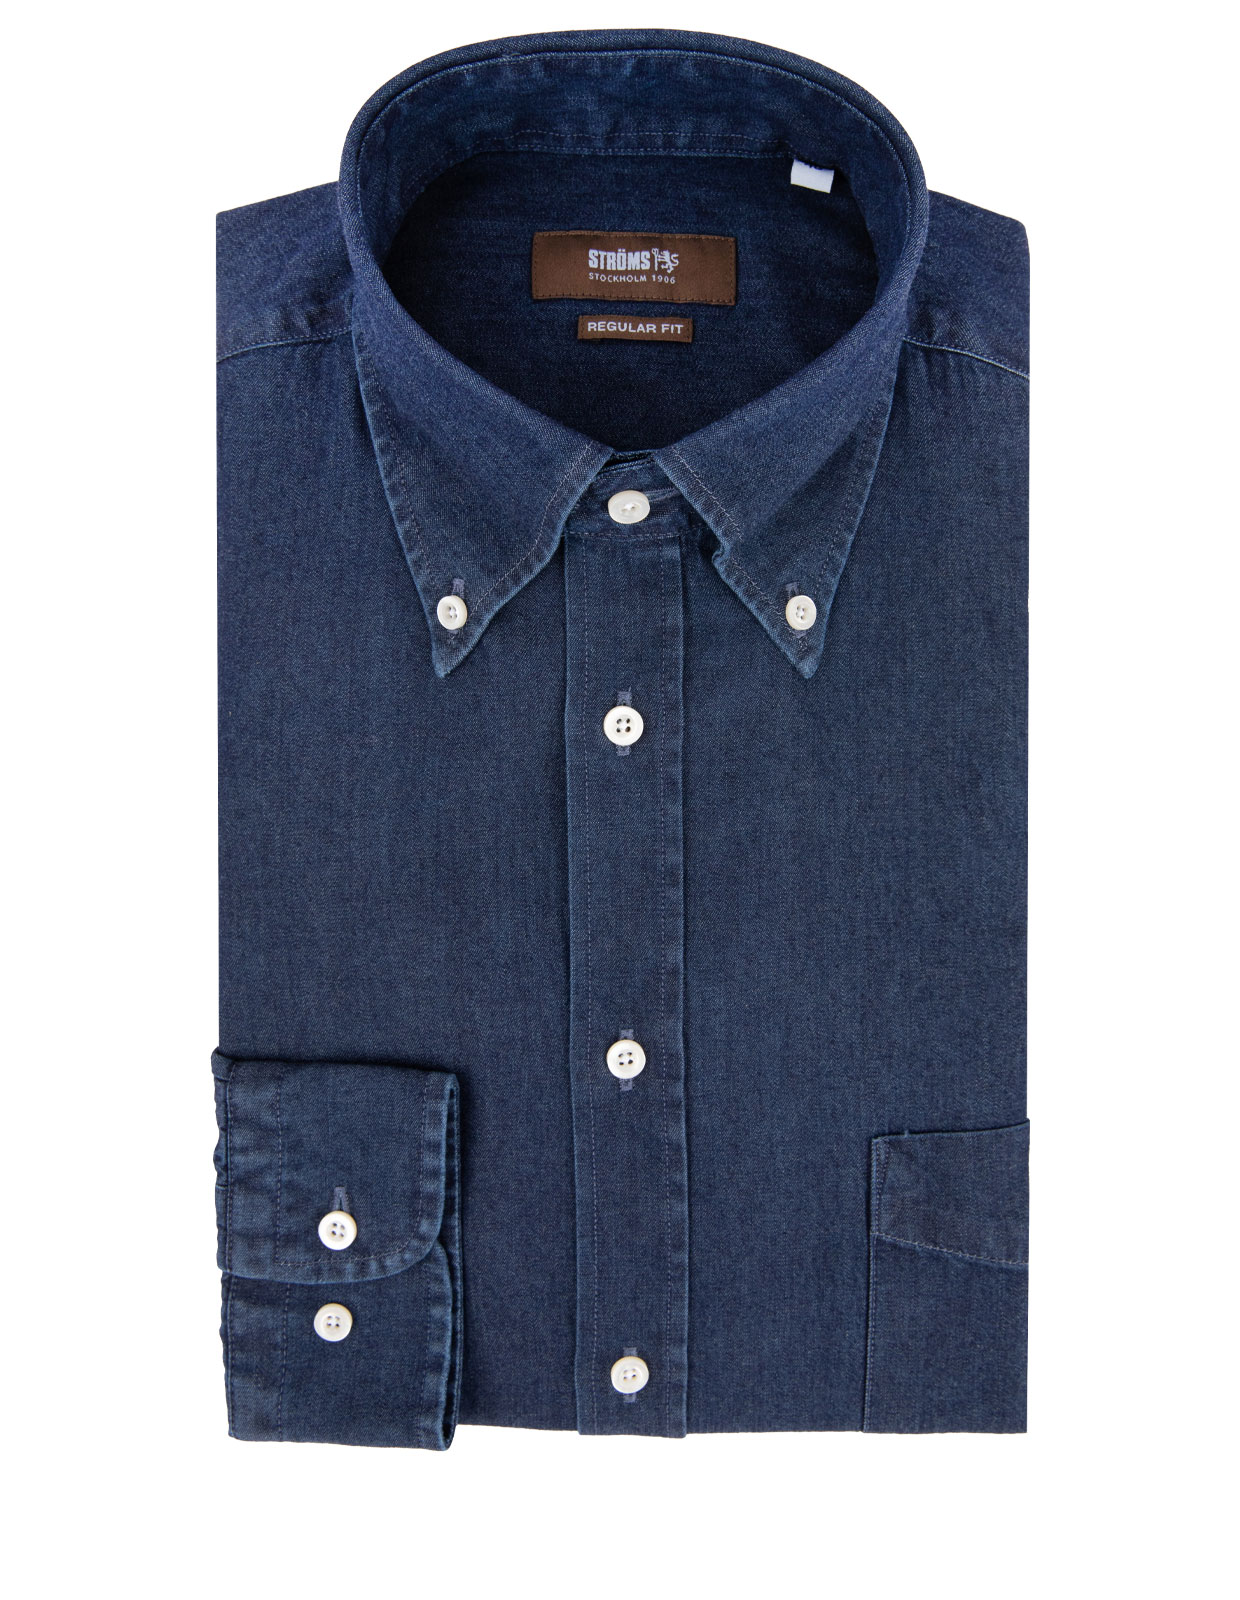 Regular Fit Button Down Skjorta Denim Denimblå